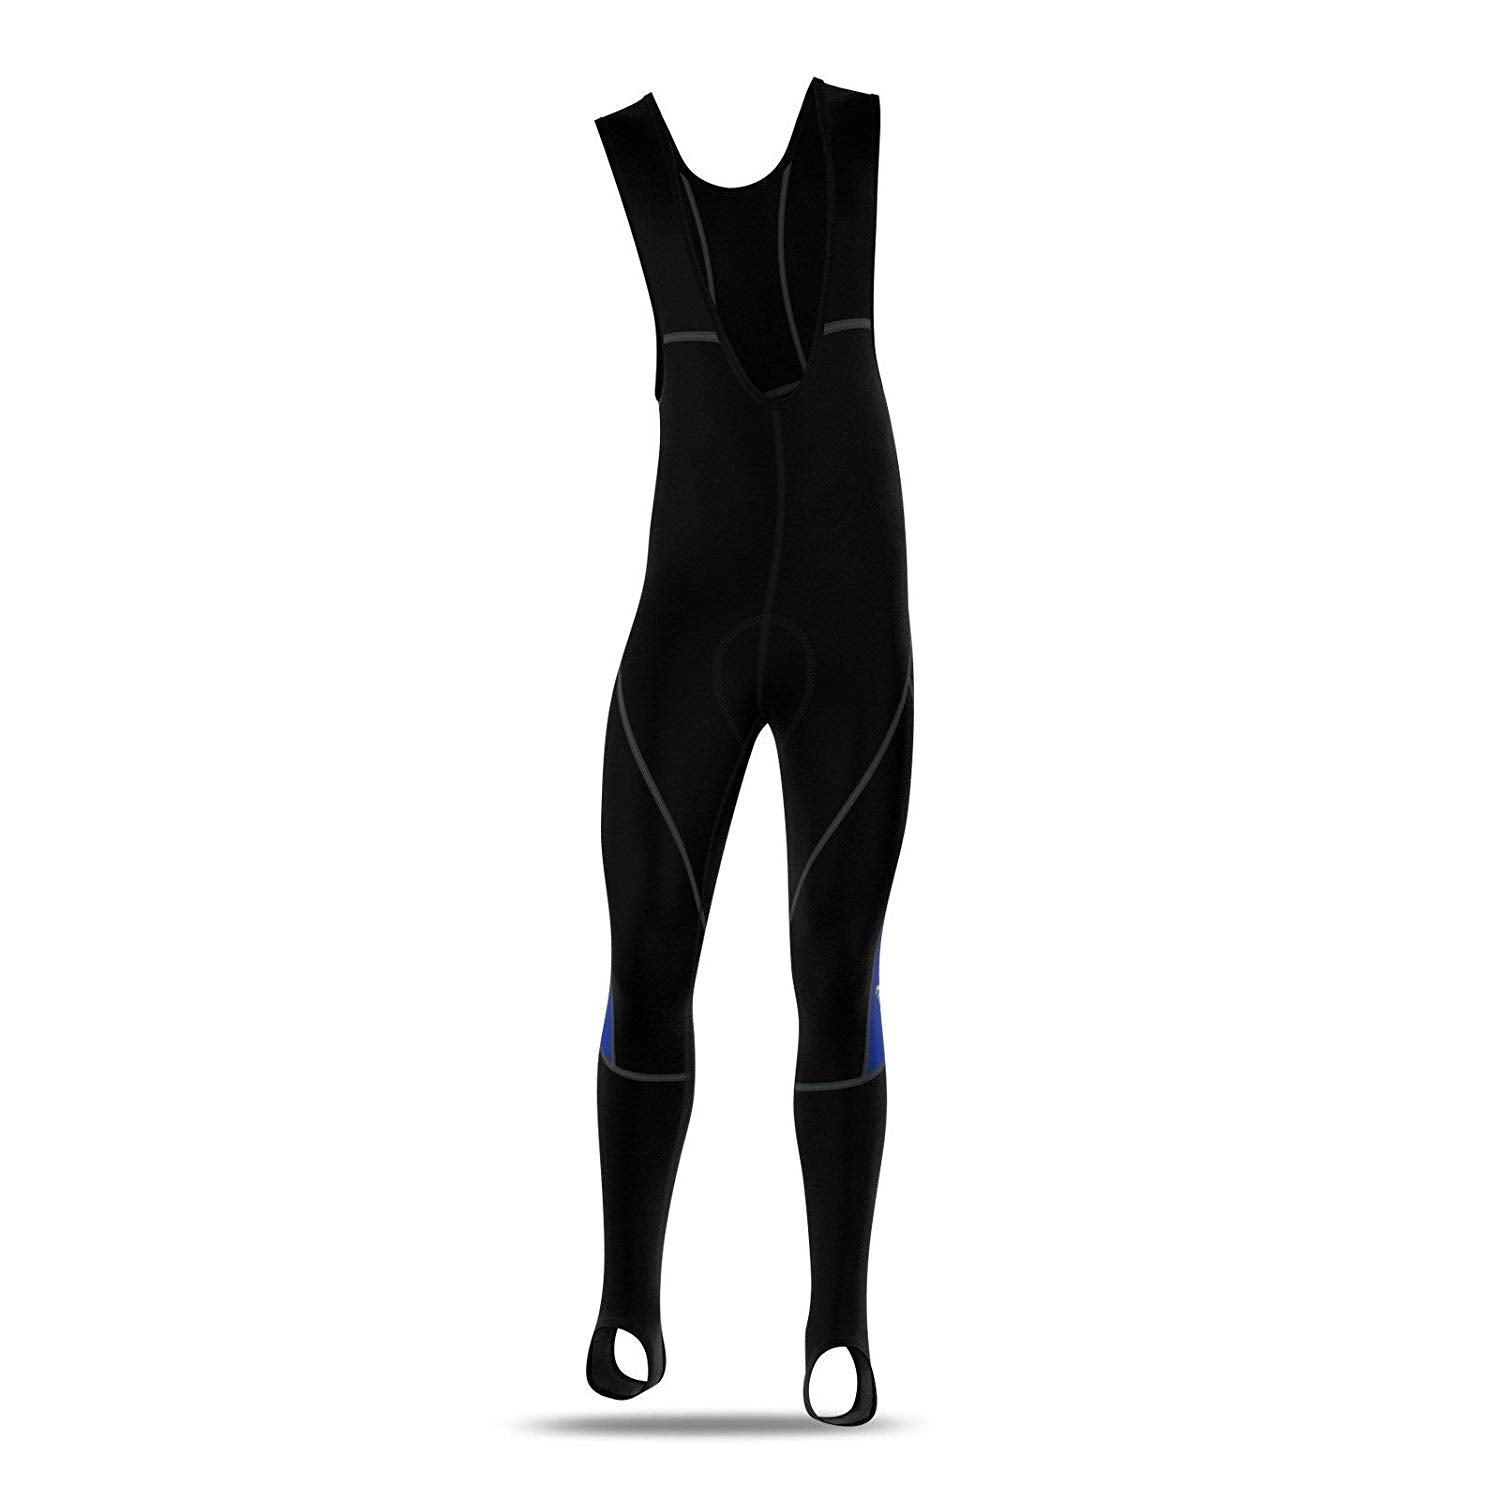 DiDoo Men's Classic Cycling Bib Tights